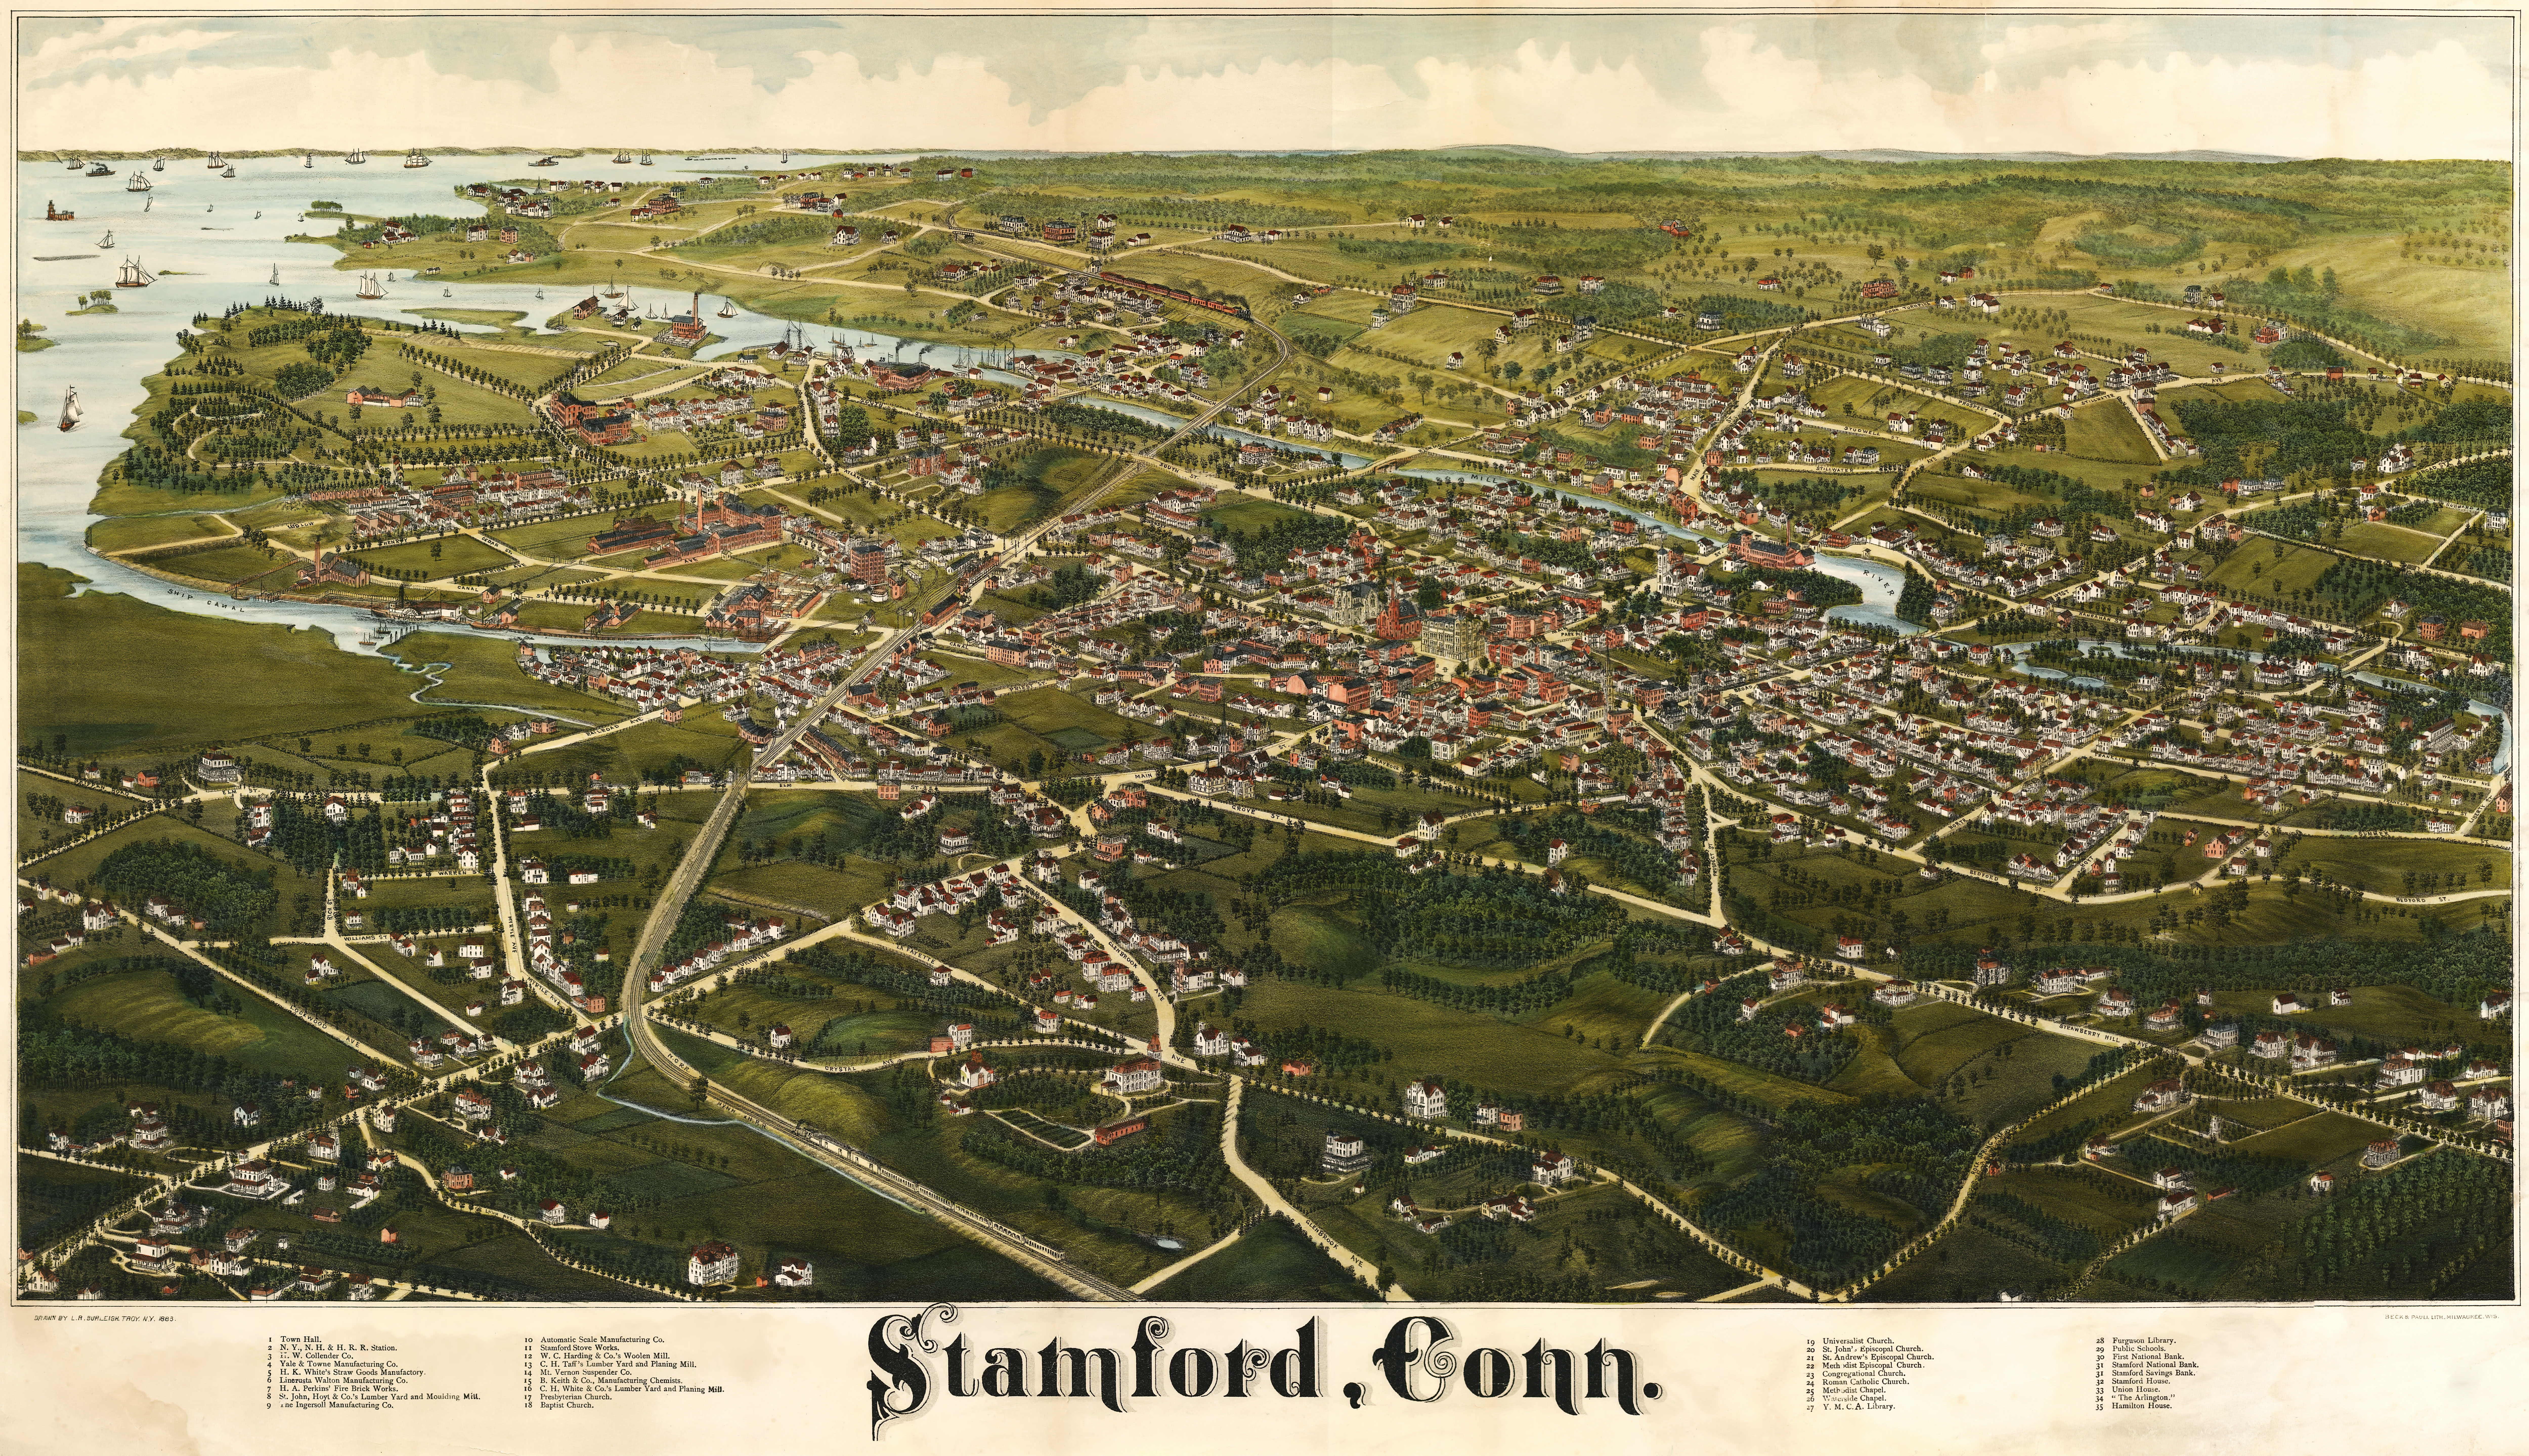 dwnld full size . burleigh's map of stamford connecticut ()